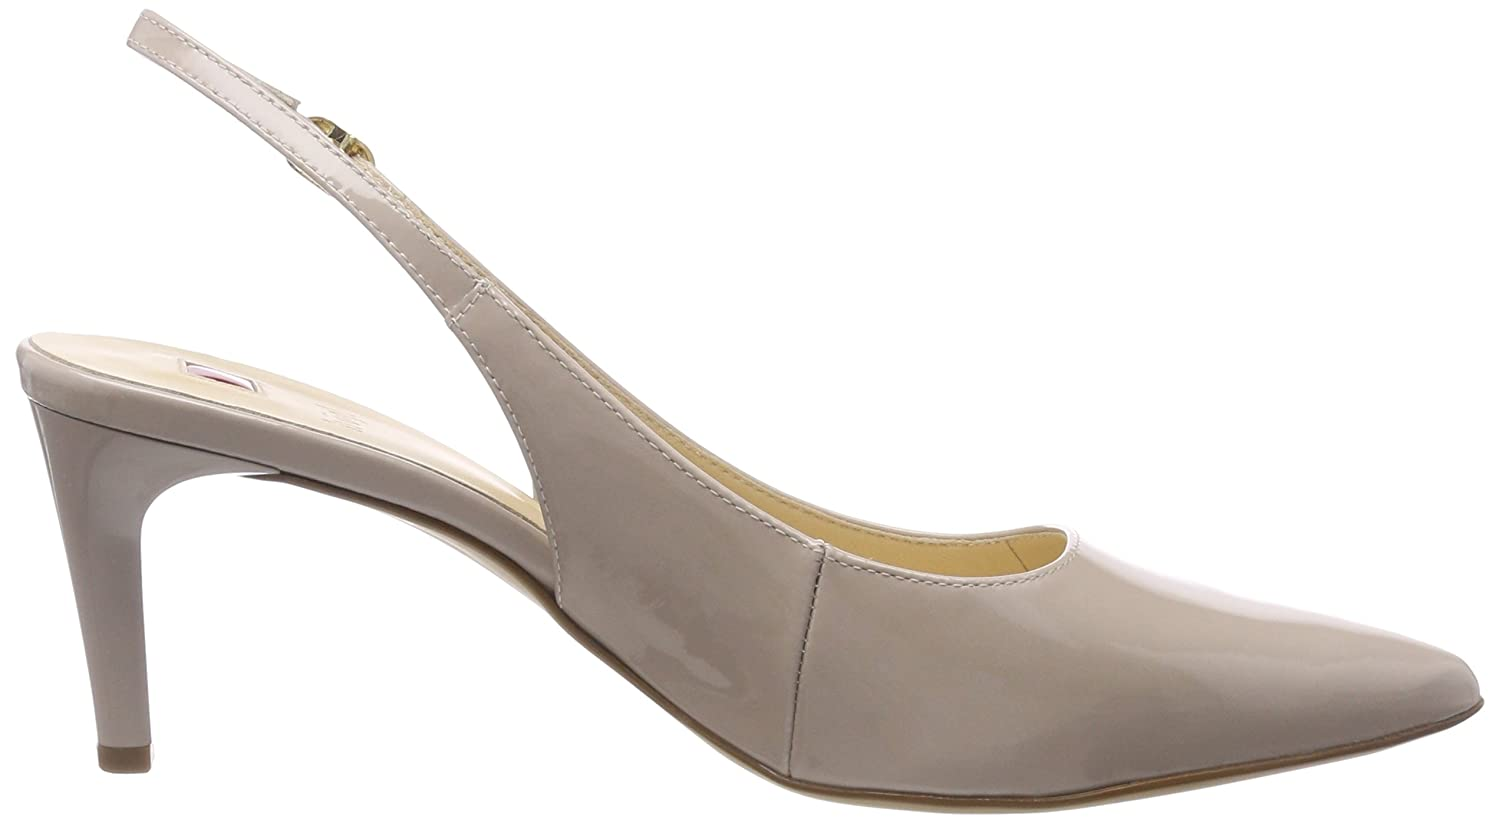 Womens 5-10 6805 0800 Sling Back Heels, Beige (Cotton) H?gl